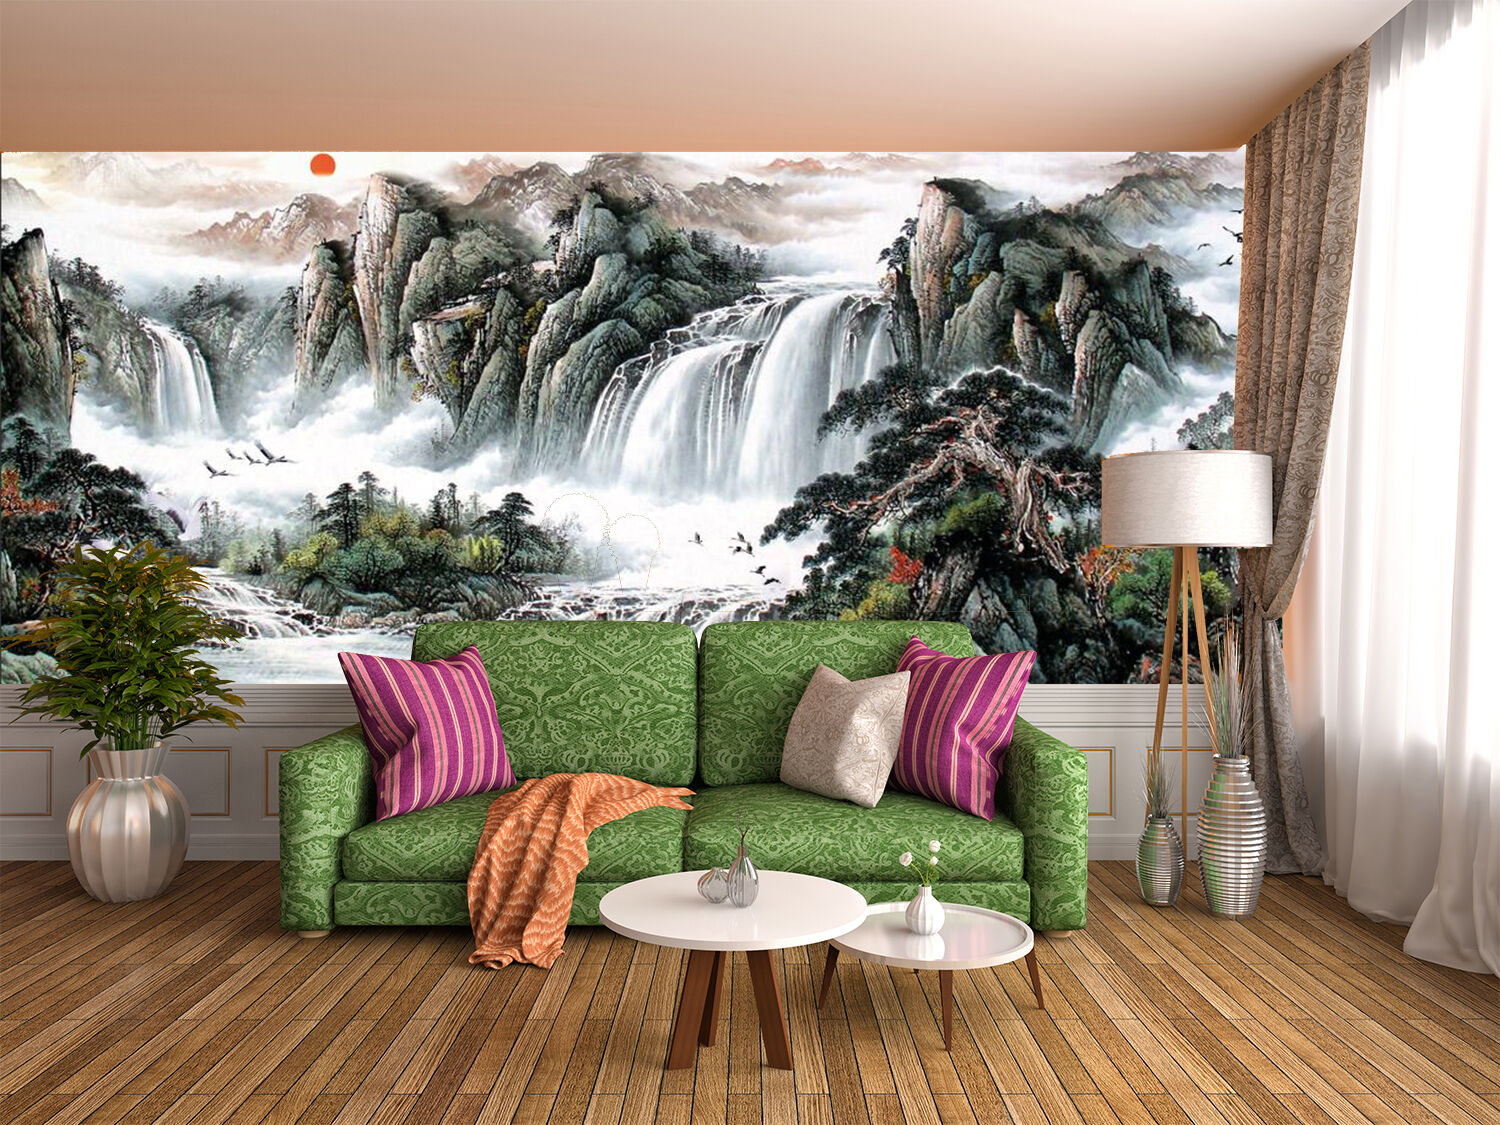 3D Magnificent Scenery 365 Wall Paper Print Decal Wall Deco Indoor wall Mural